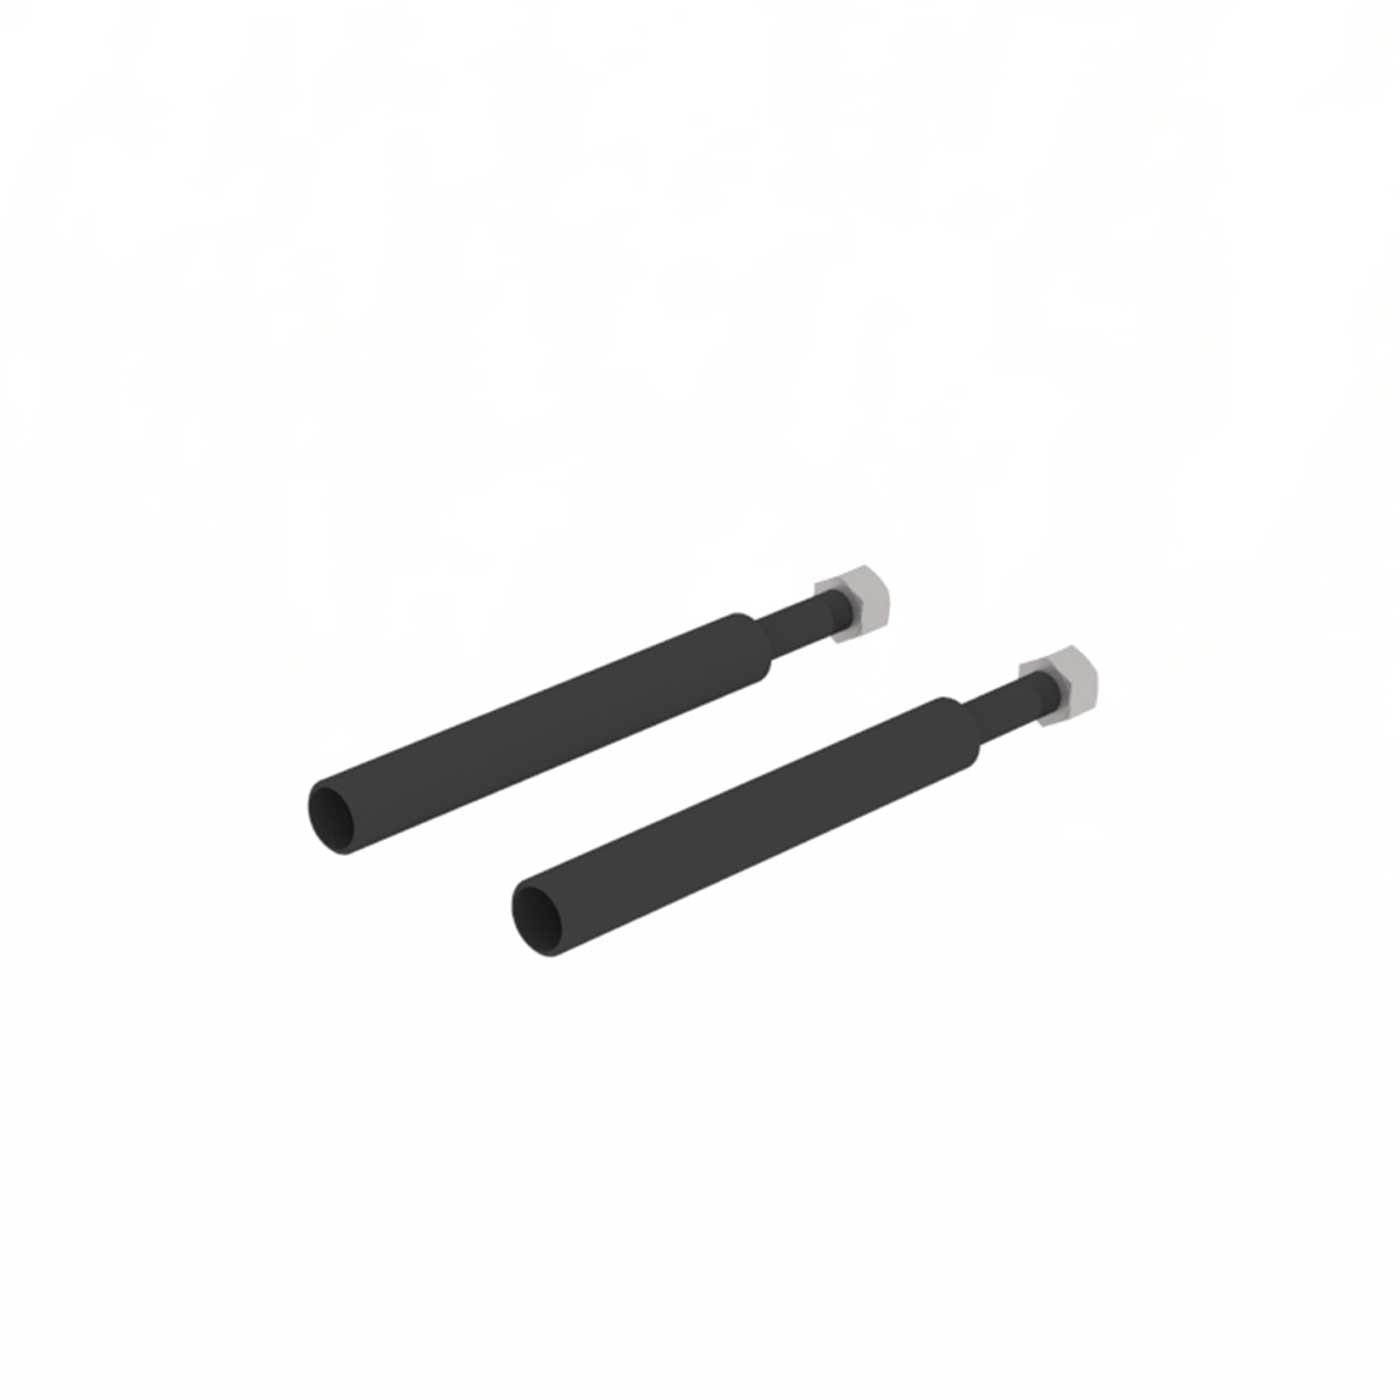 Weight Storage Pegs - Out of Stock